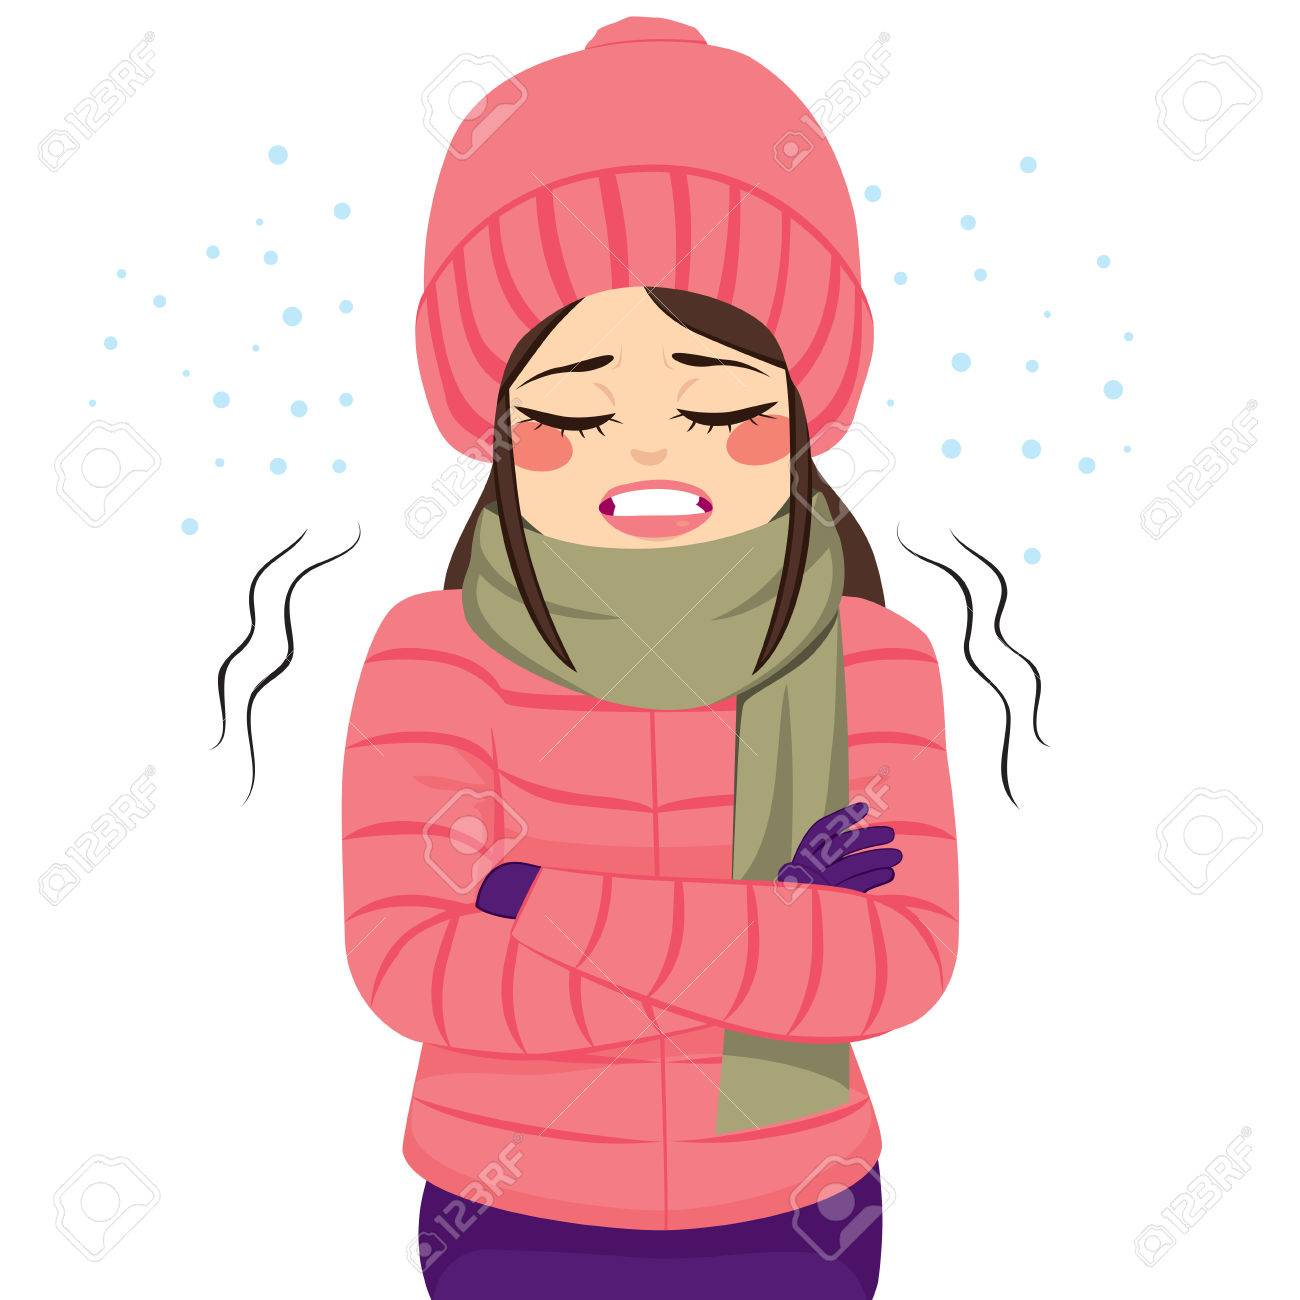 915 Winter Clothes free clipart.